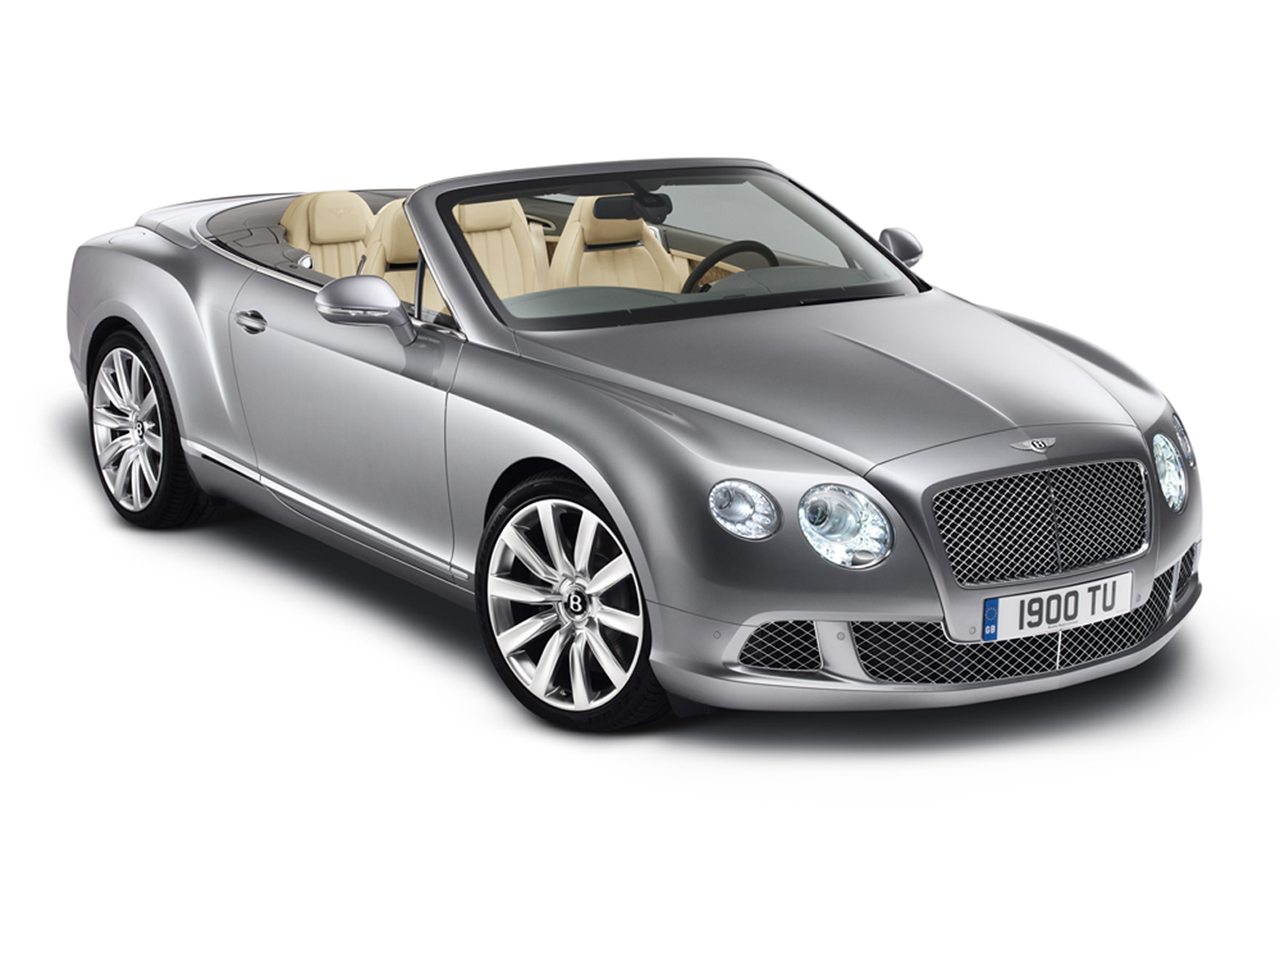 Bentley Continental GTC 2012 Wallpaper HD For Desktop